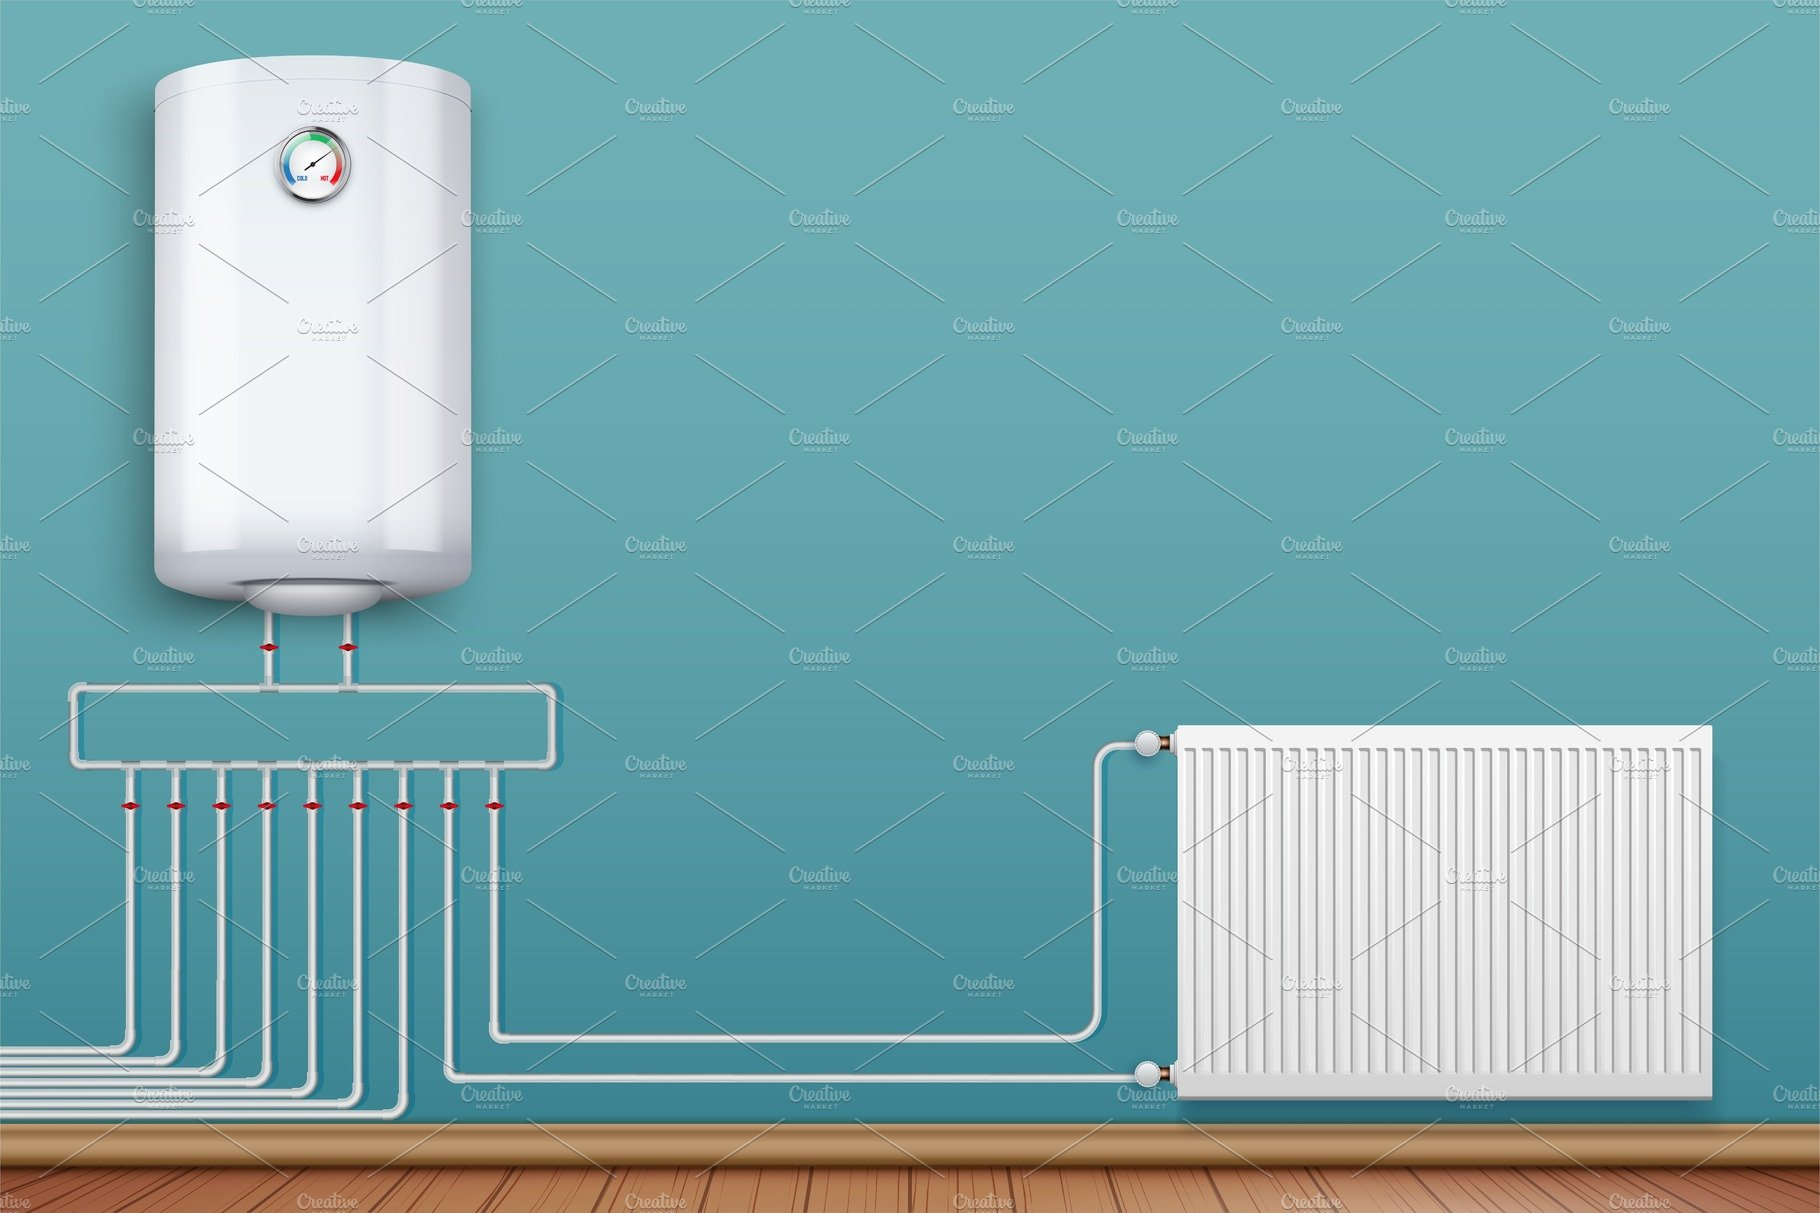 Heating radiator and boiler in room ~ Illustrations ~ Creative Market